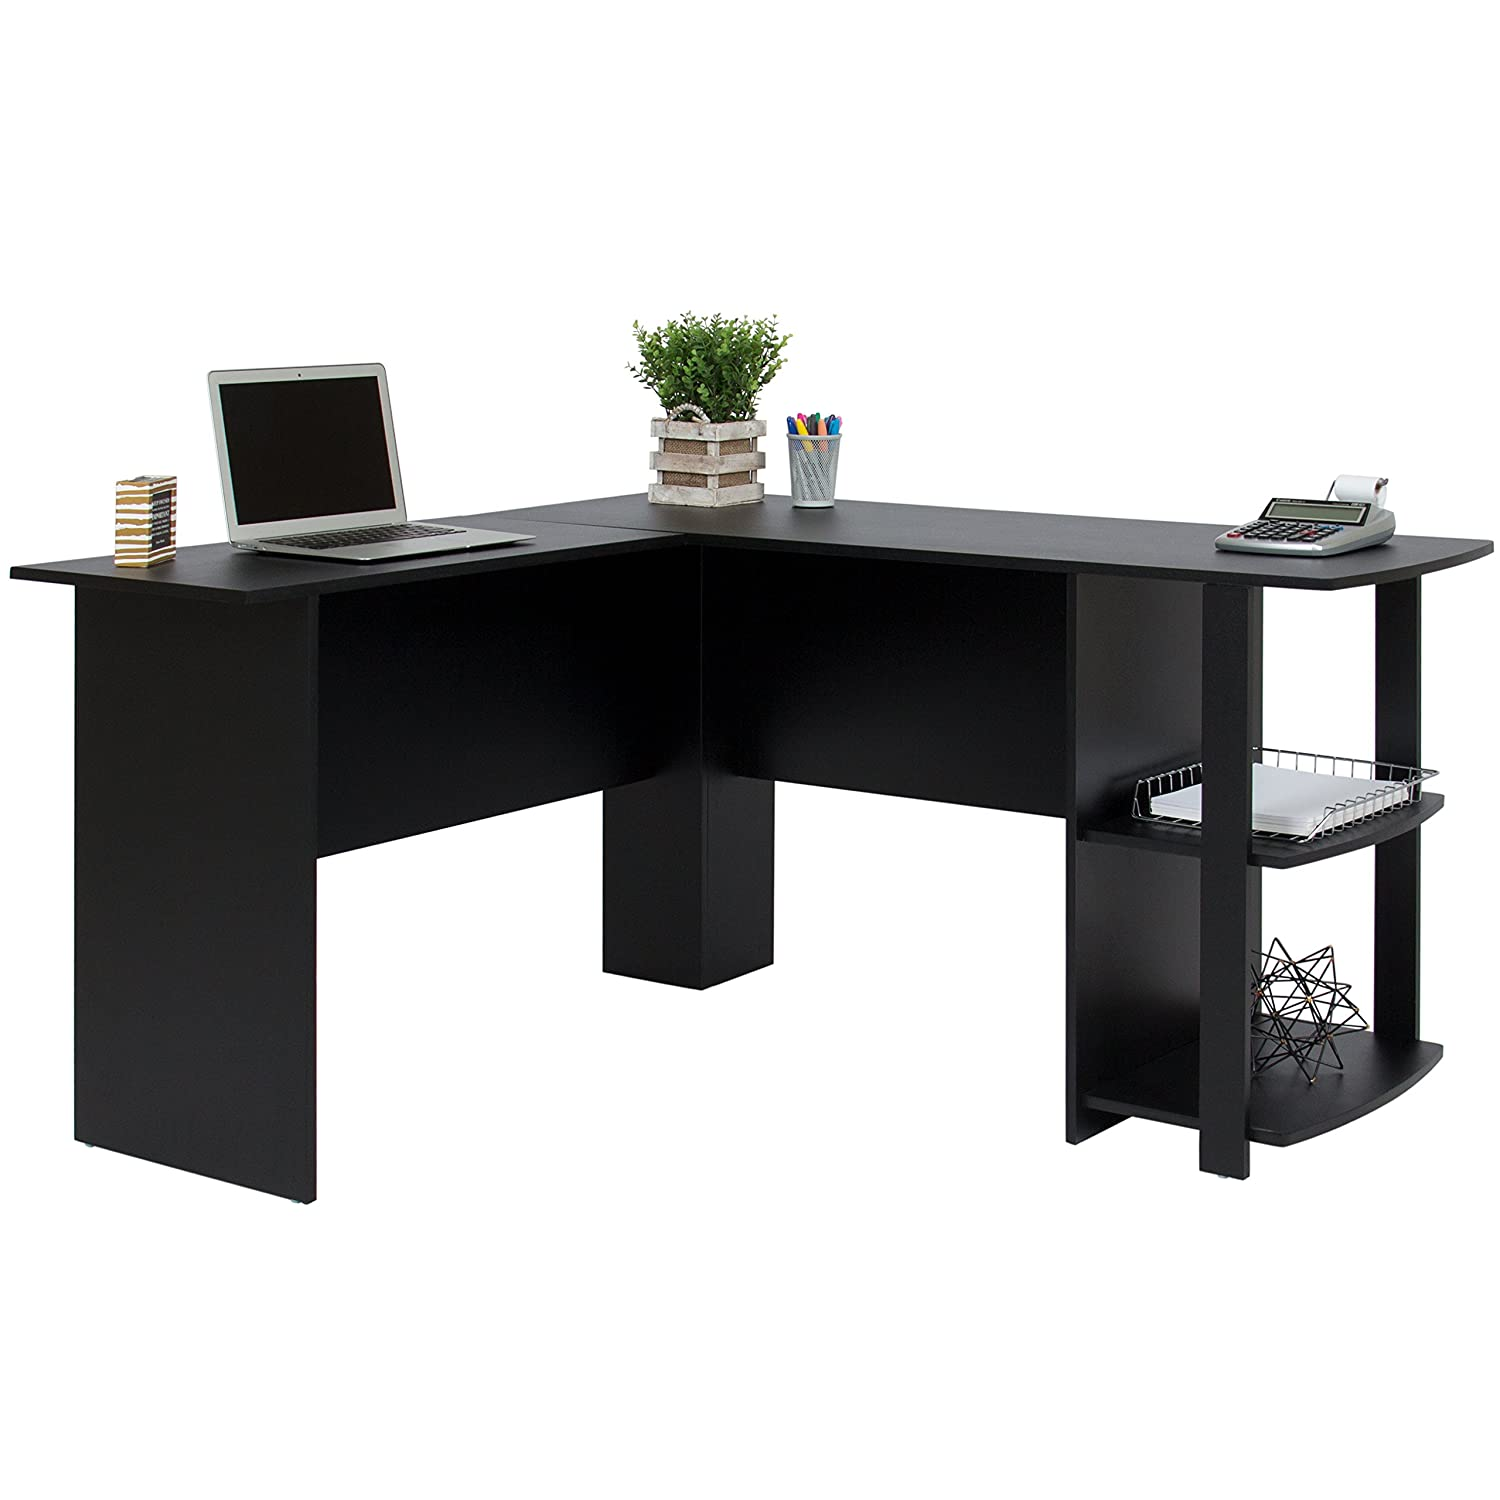 utility traditions styles a home granite raw black homestyles top with desk